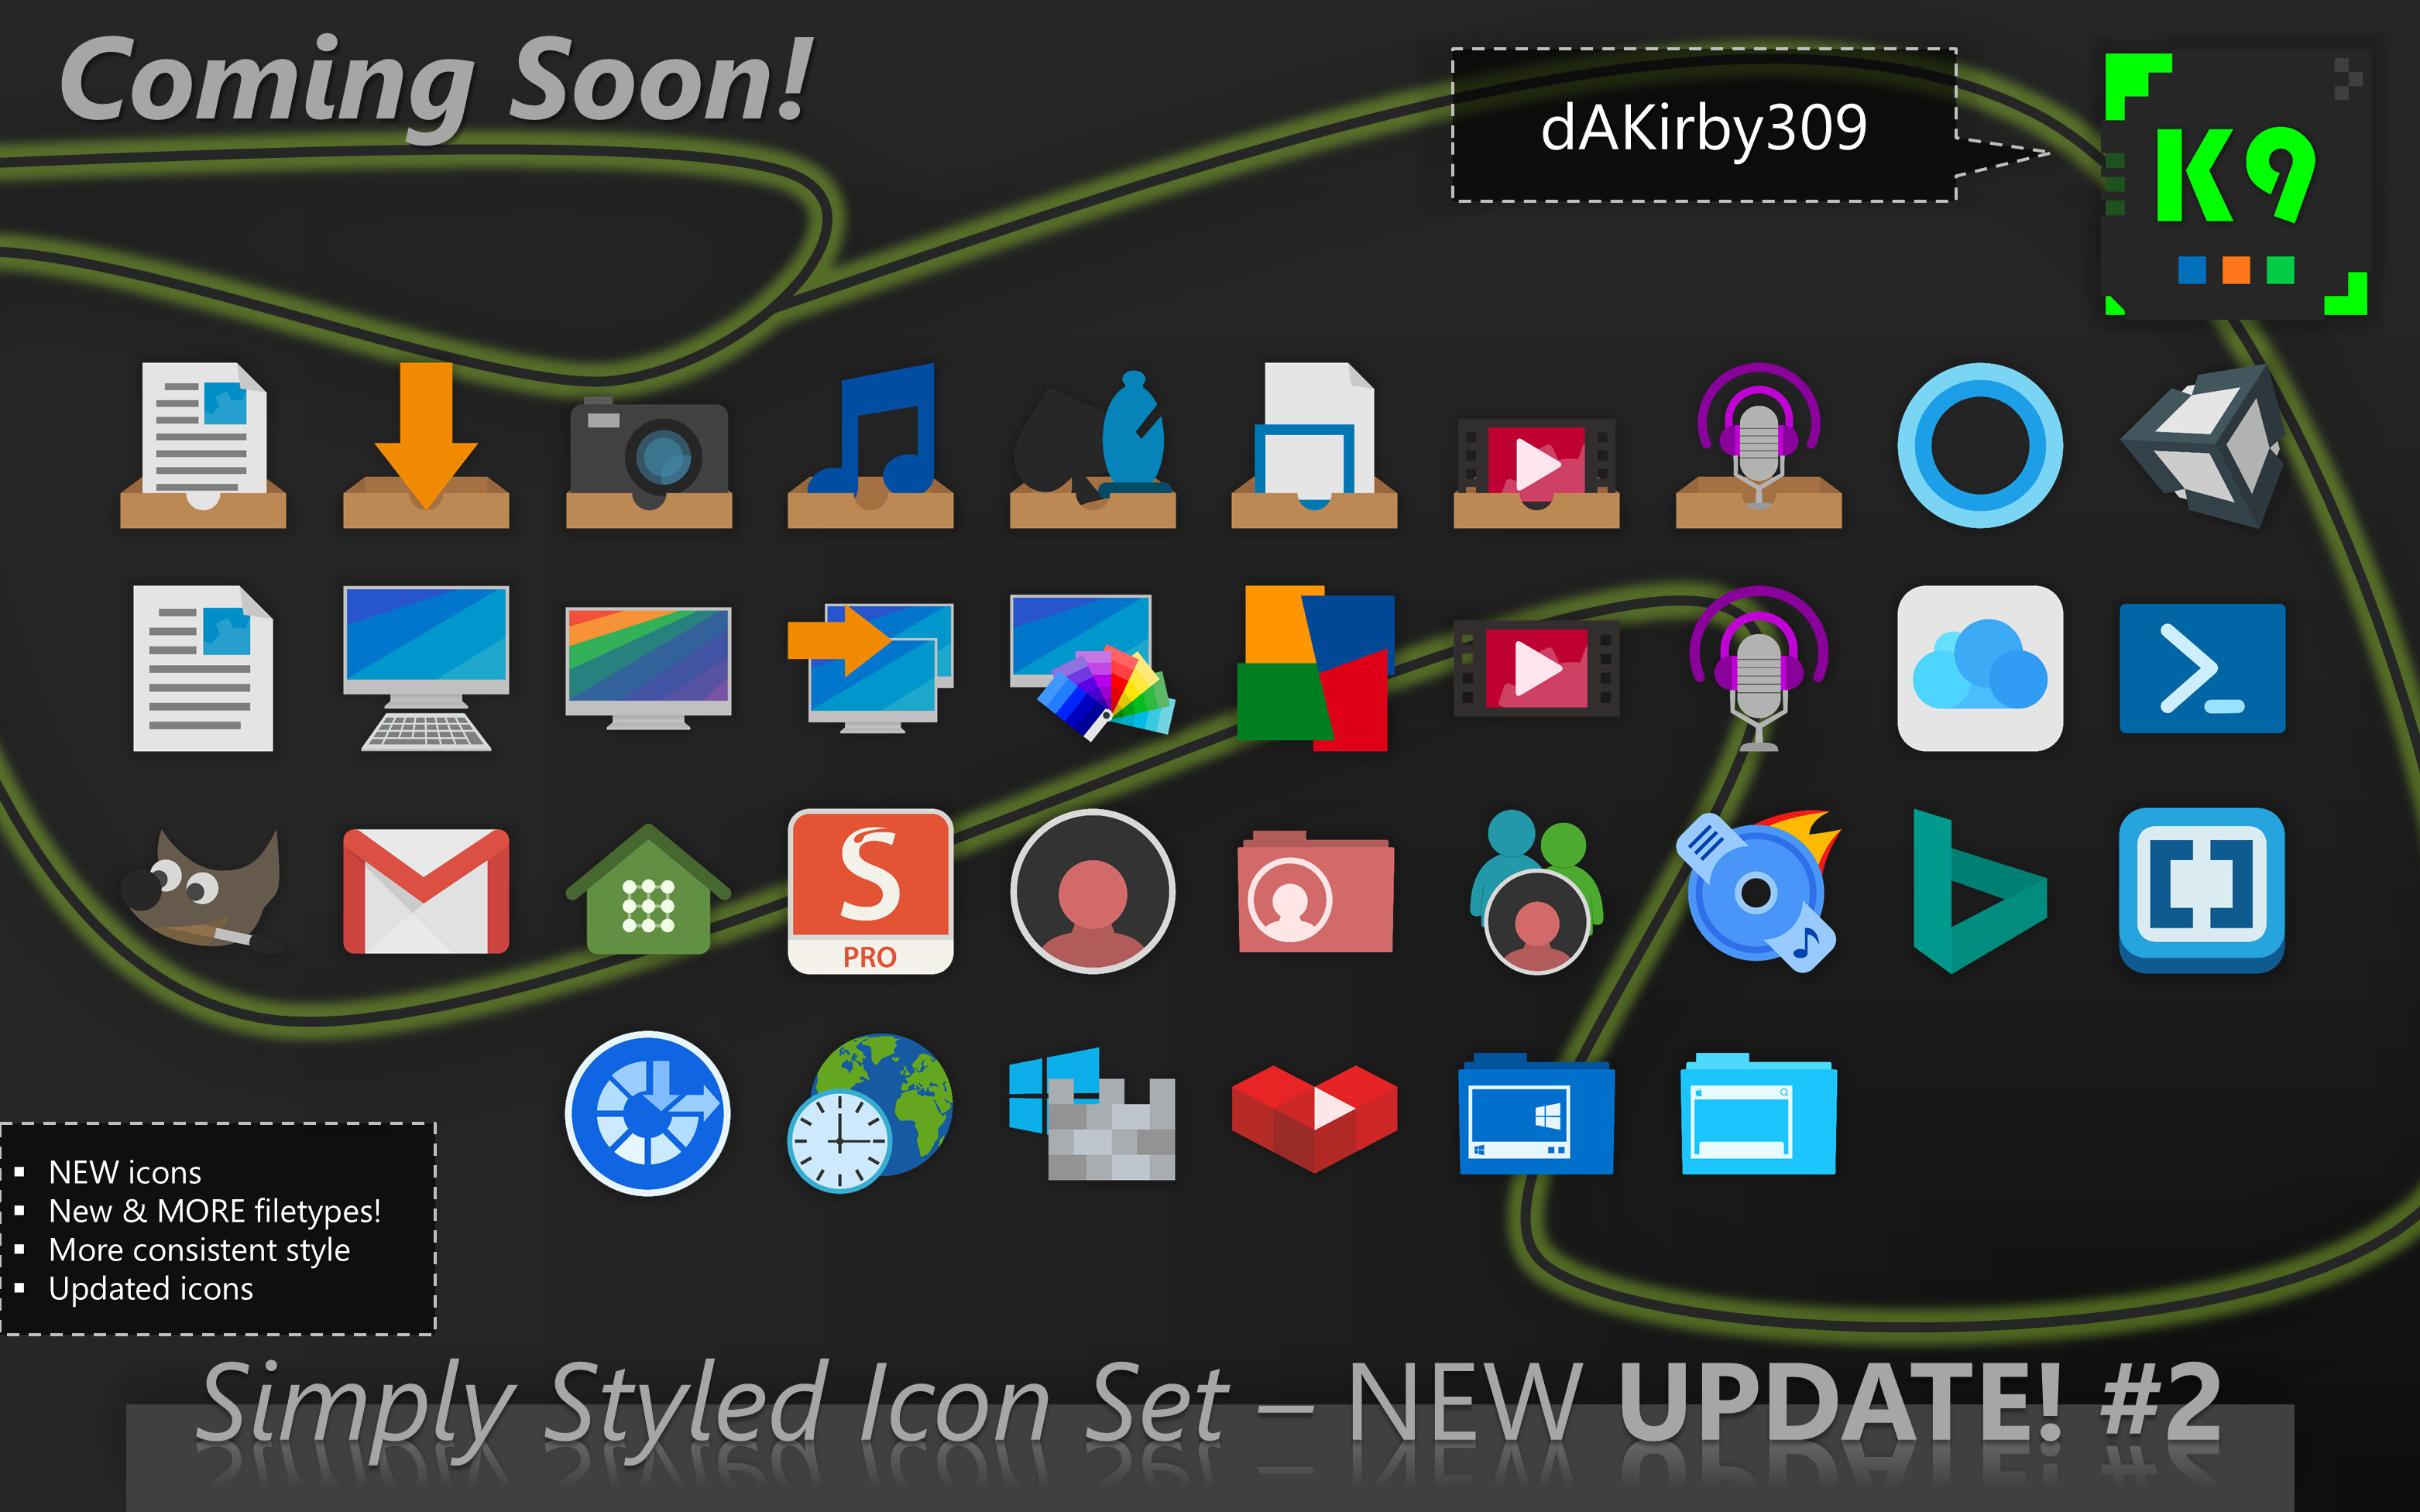 UPDATE PREVIEW #2 - Simply Styled Icon Set by dAKirby309